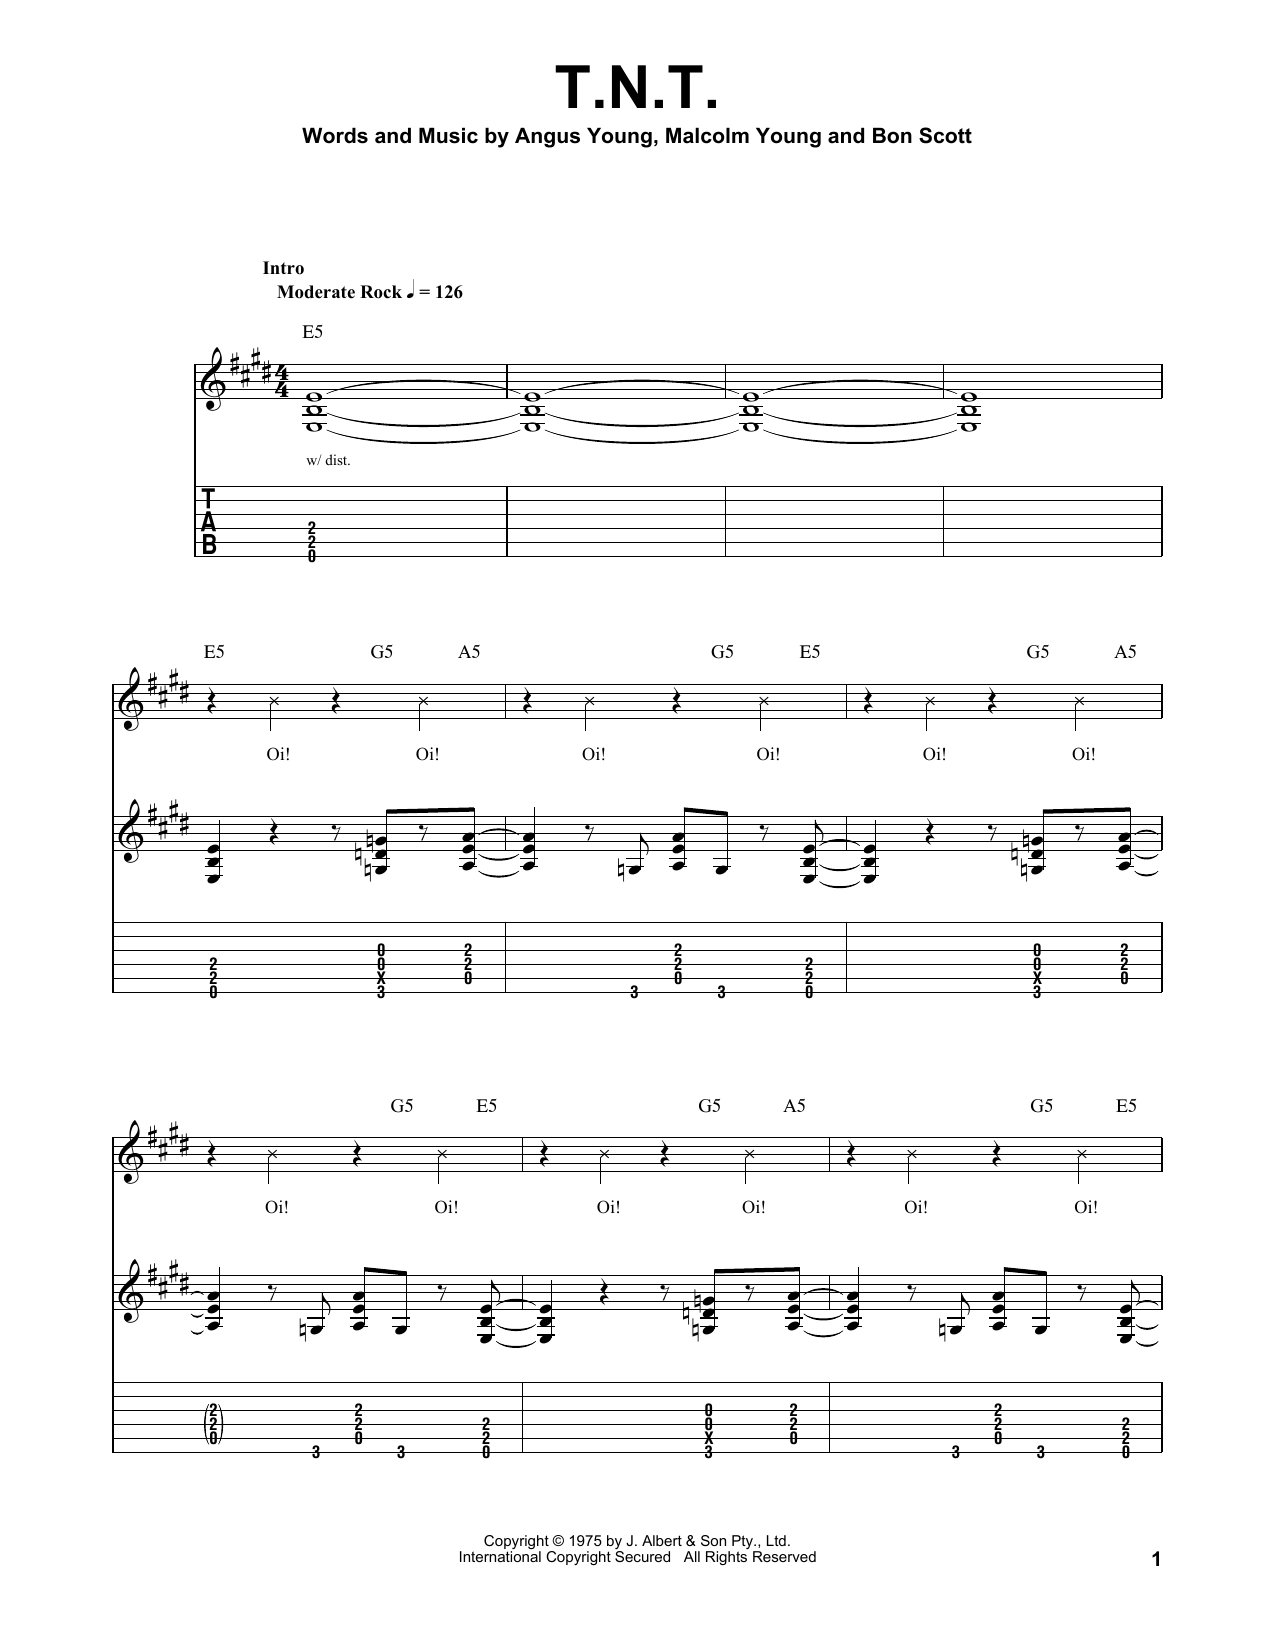 Acdc Tnt Sheet Music Notes Chords Printable Rock Easy